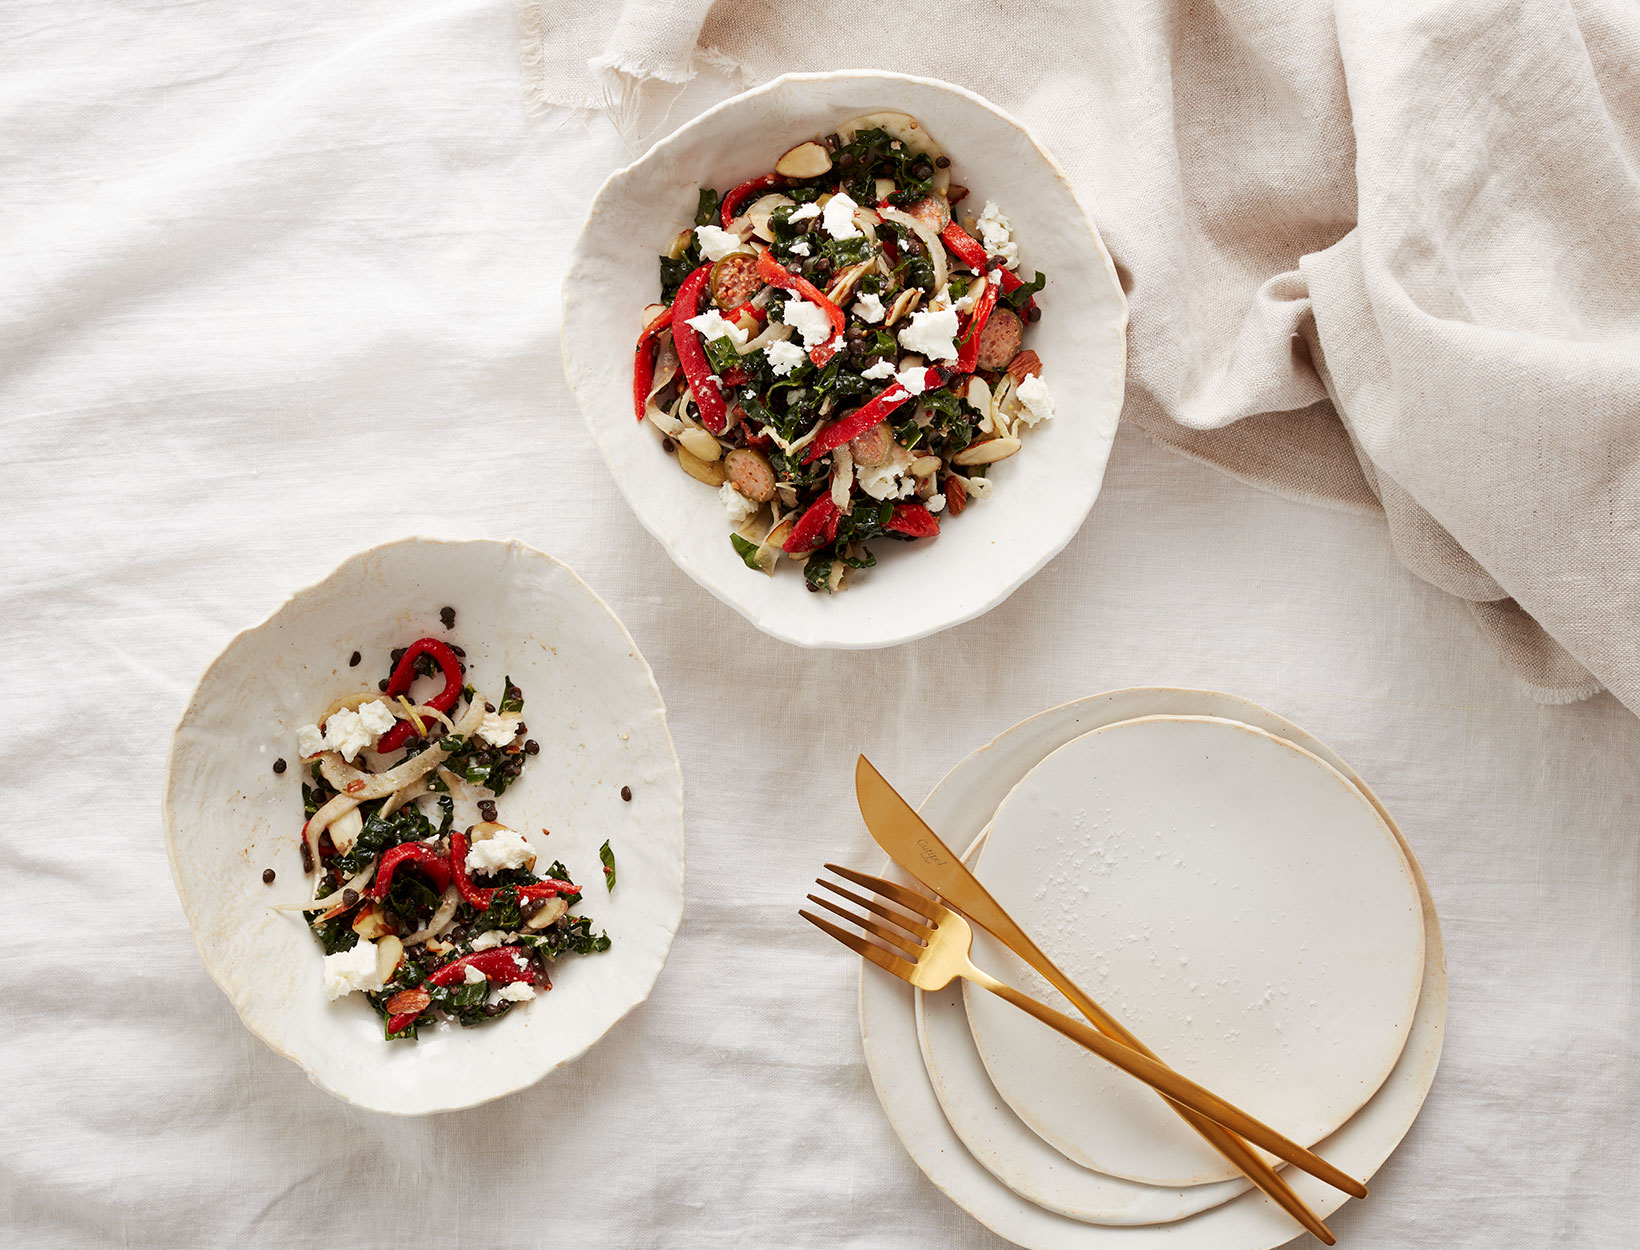 Lentil, Kale, and Piquillo Pepper Salad